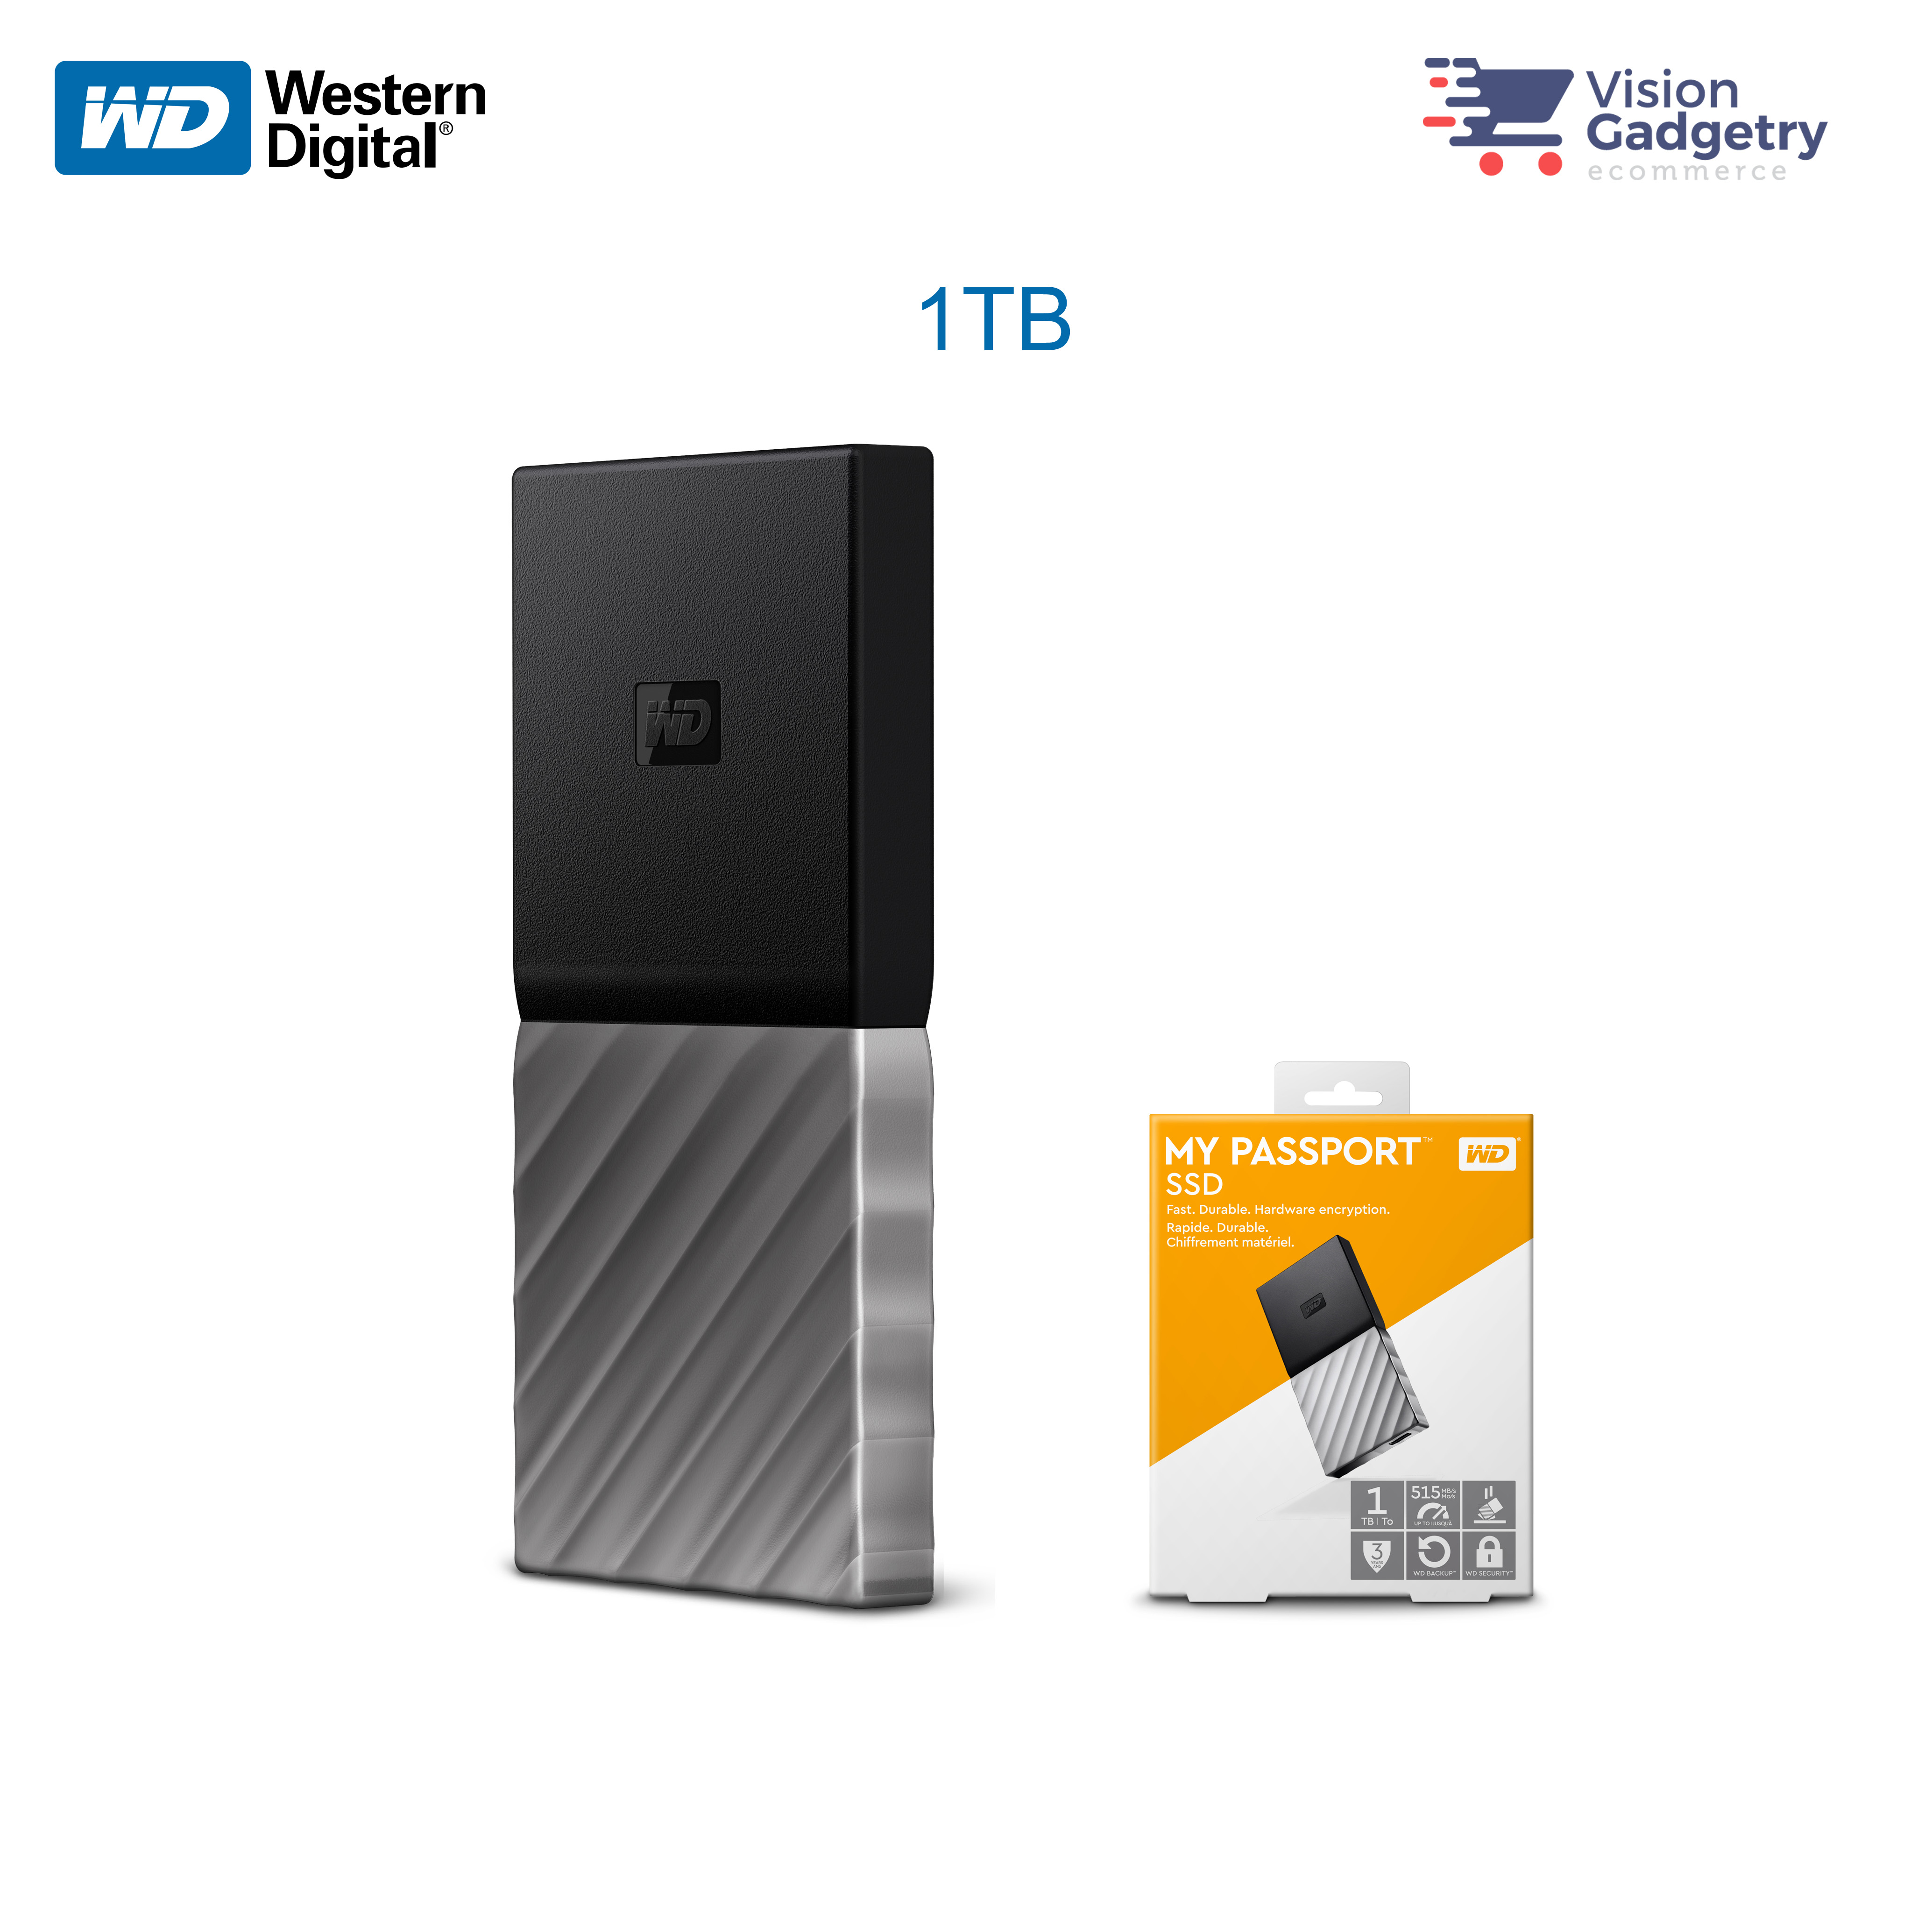 WD Western Digital MY Passport External Portable SSD 1TB 515MB/S USB 3